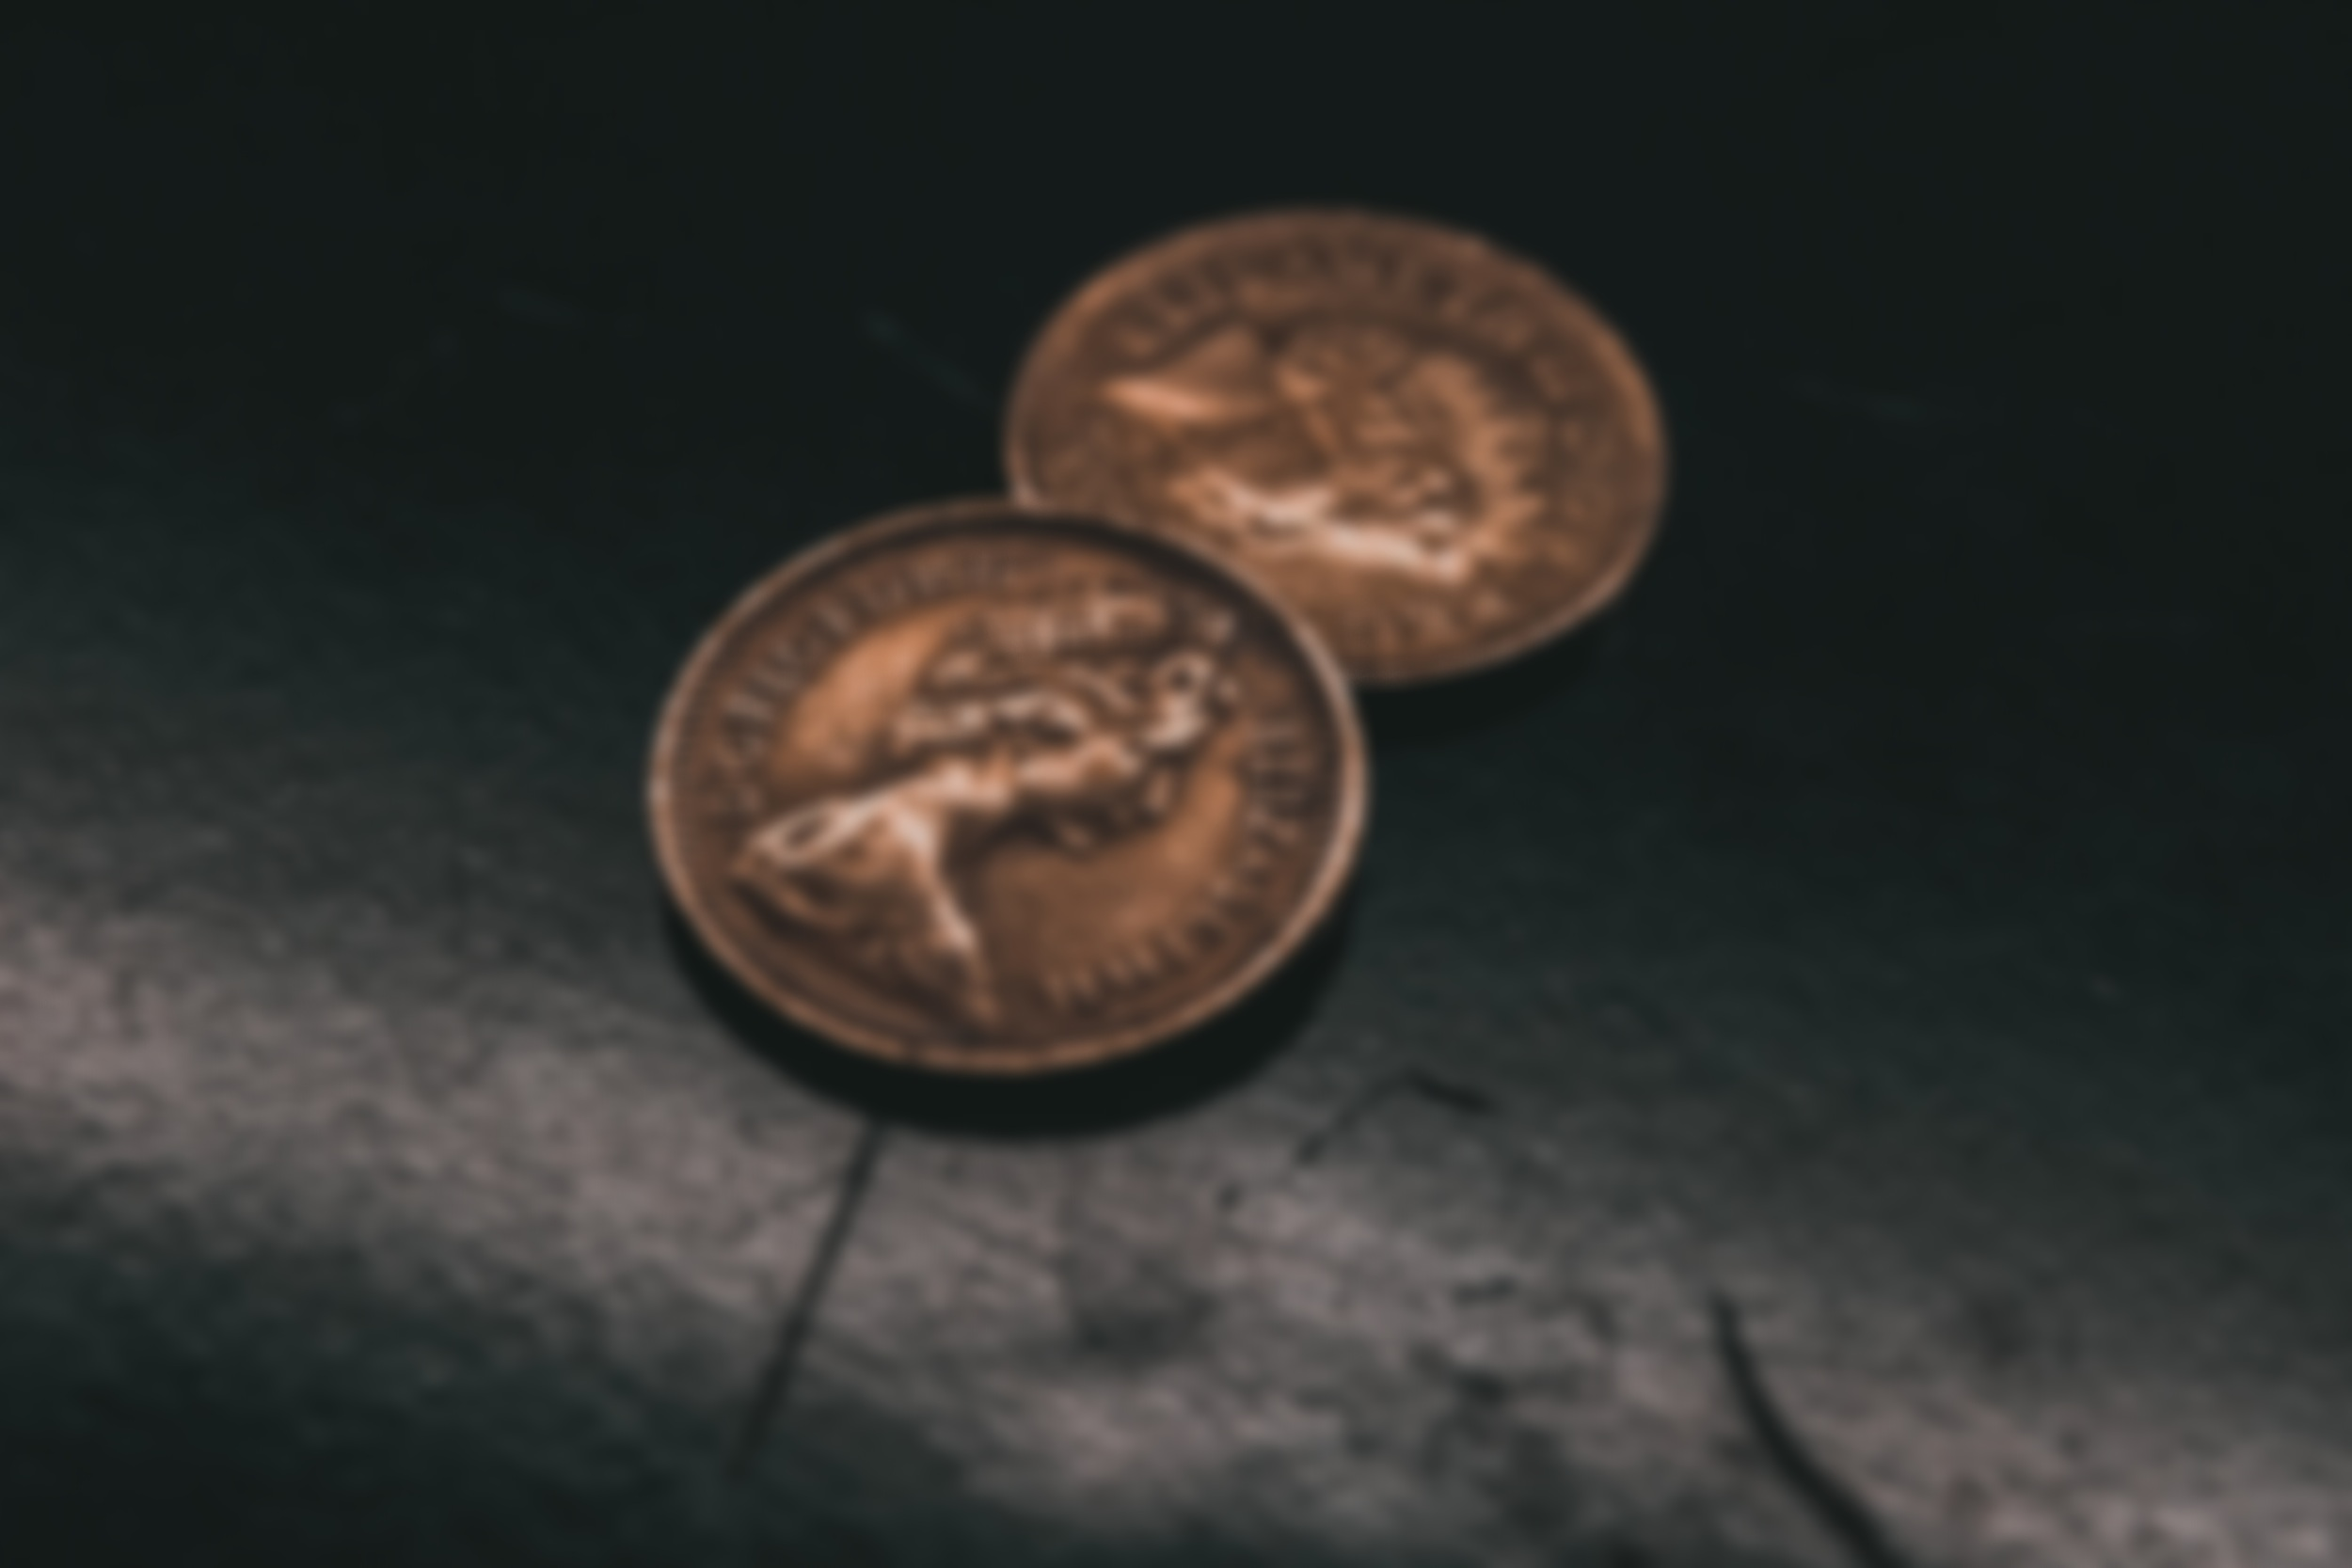 The other side of the virtual coin: does cashless economy exacerbate homelessness? -